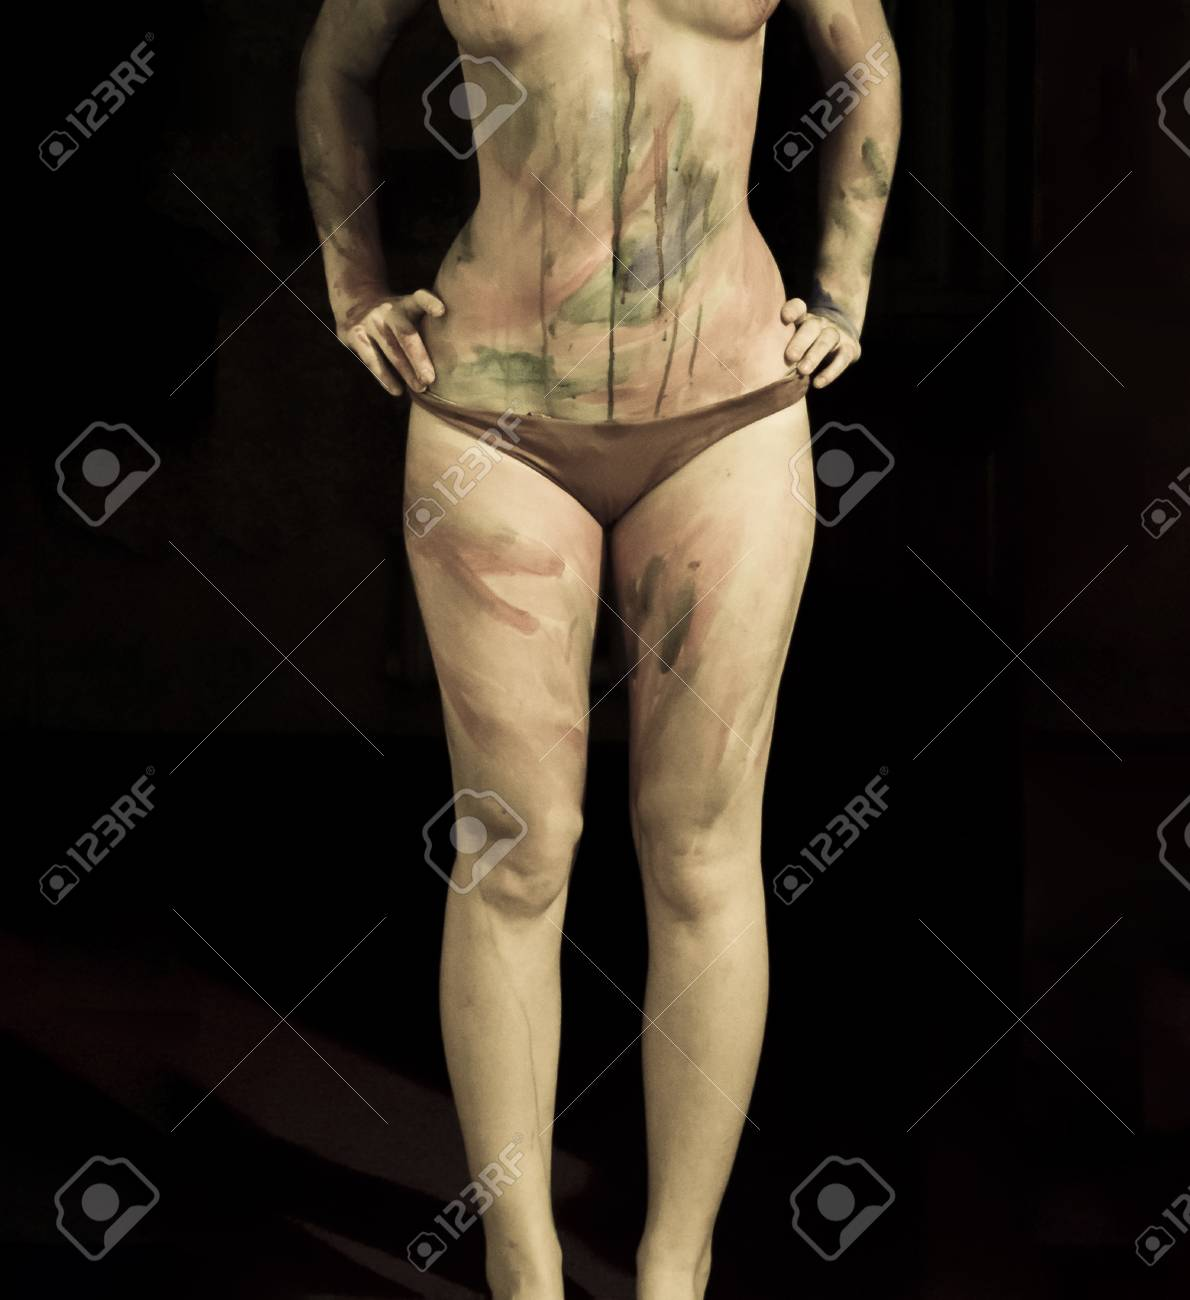 Body Art Drawing On The Body Beautiful Girl With Painted Body Stock Photo Picture And Royalty Free Image Image 92527395